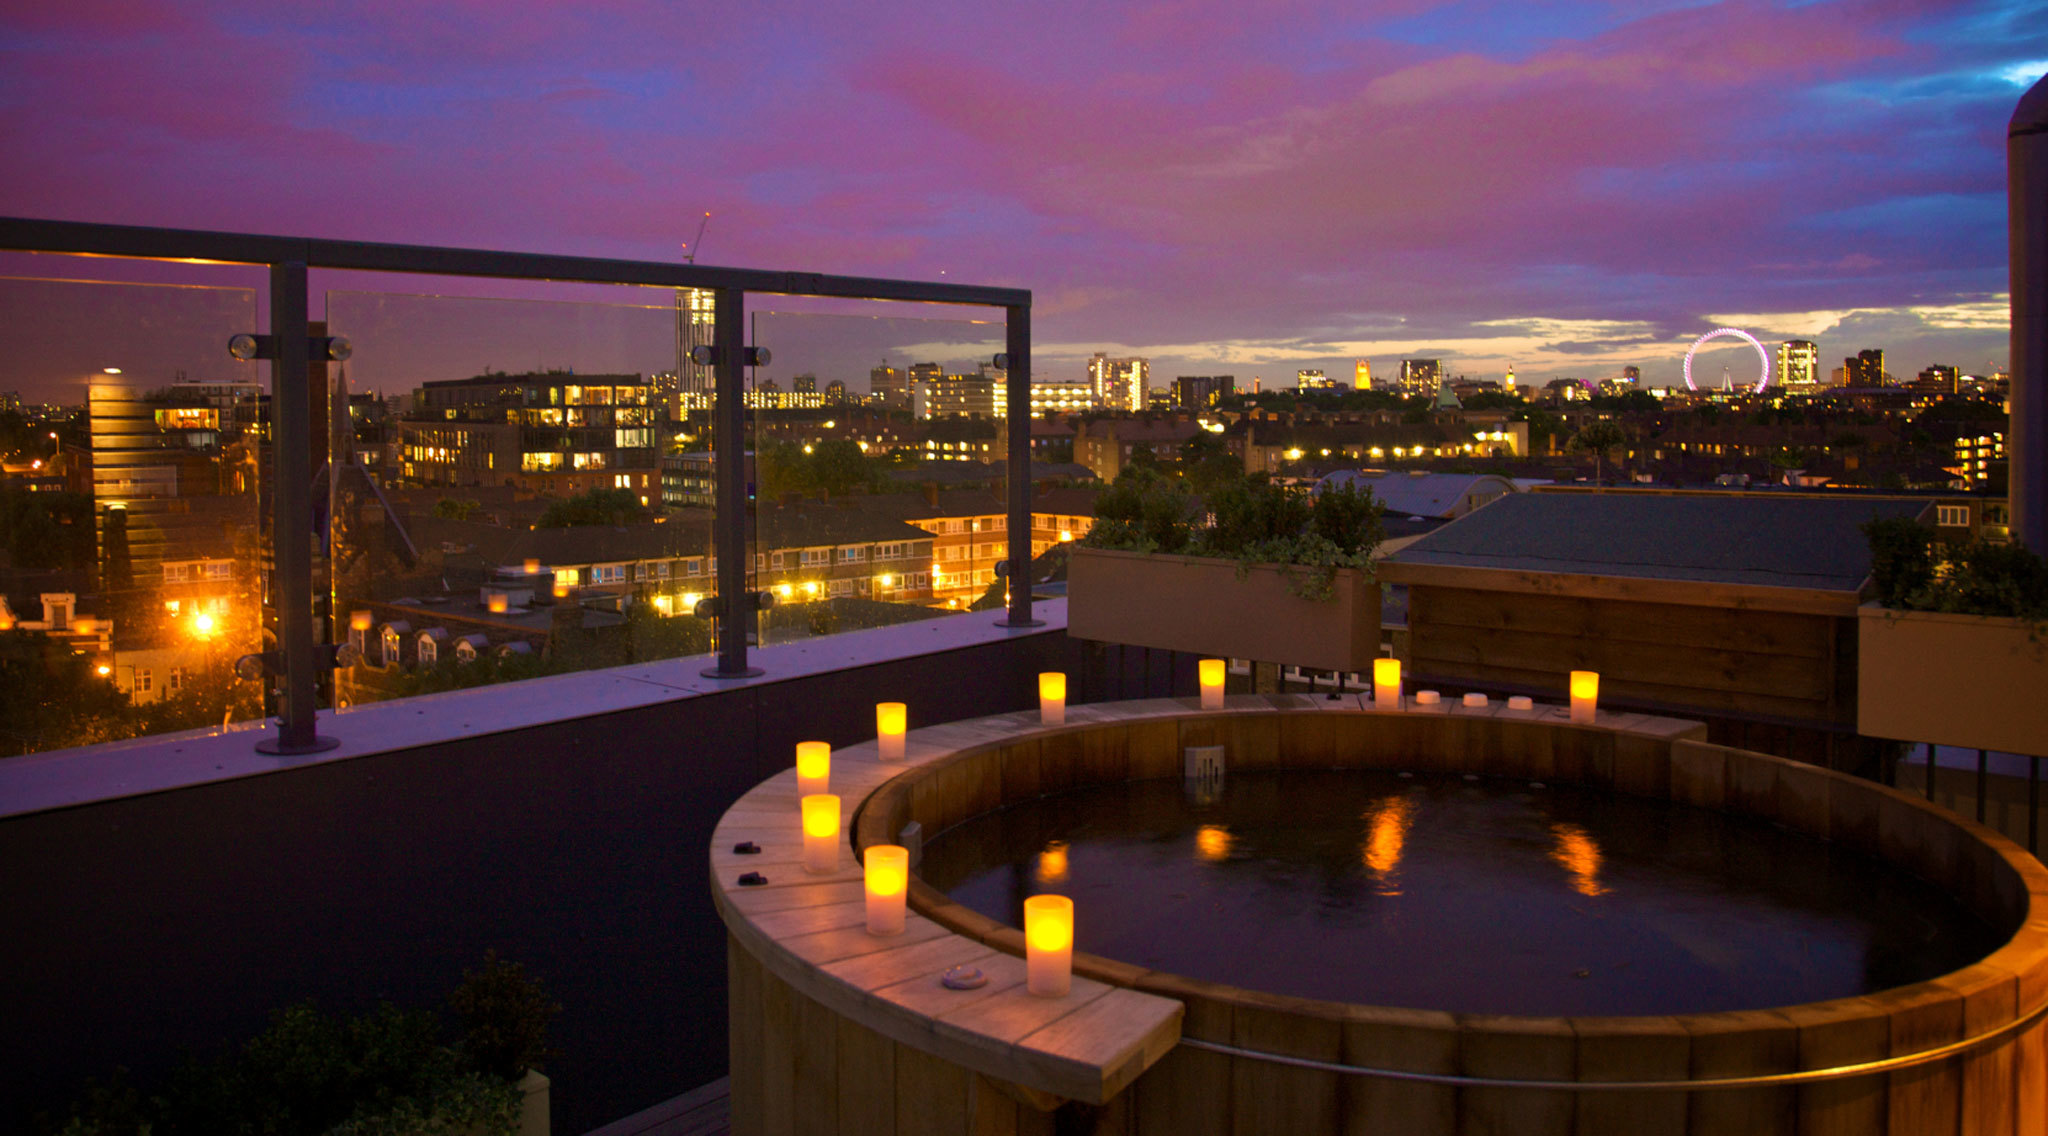 London hotels with jacuzzis and hot tubs time out london for Best modern hotels in london